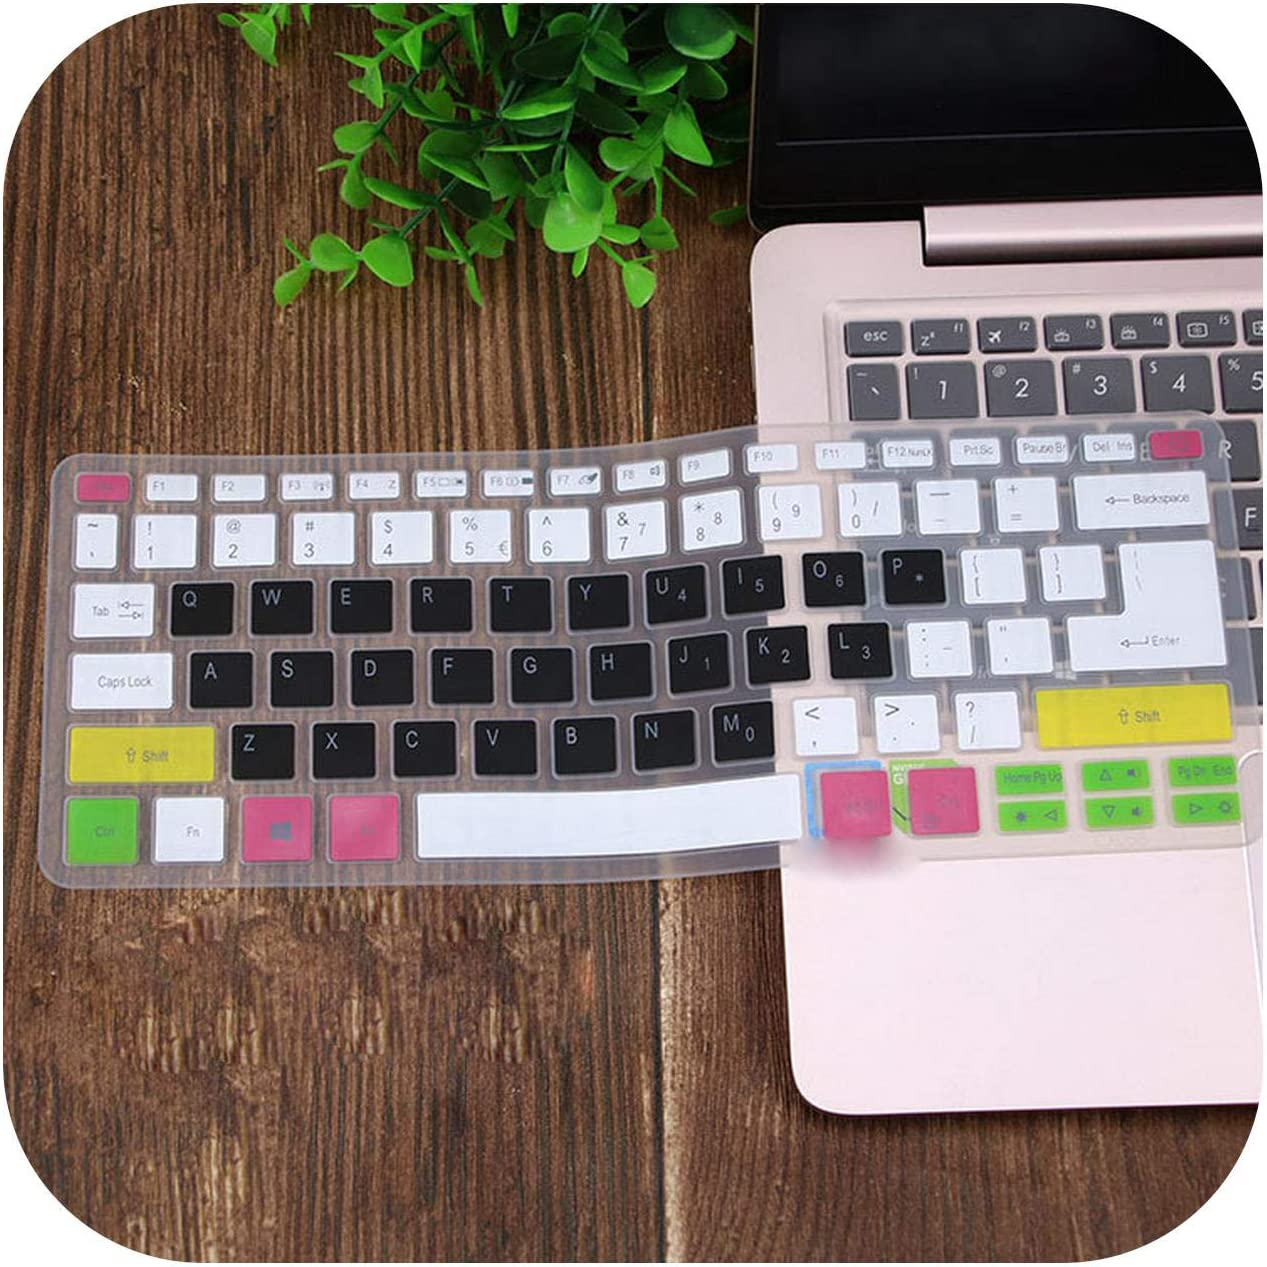 Silicone Keyboard Cover Skin Protector Guard for Acer Swift 3 Sf314-52 Sf314-54 / Swift 1 Sf114-32 14 Inch I5 8250U Notebook-Color 1-